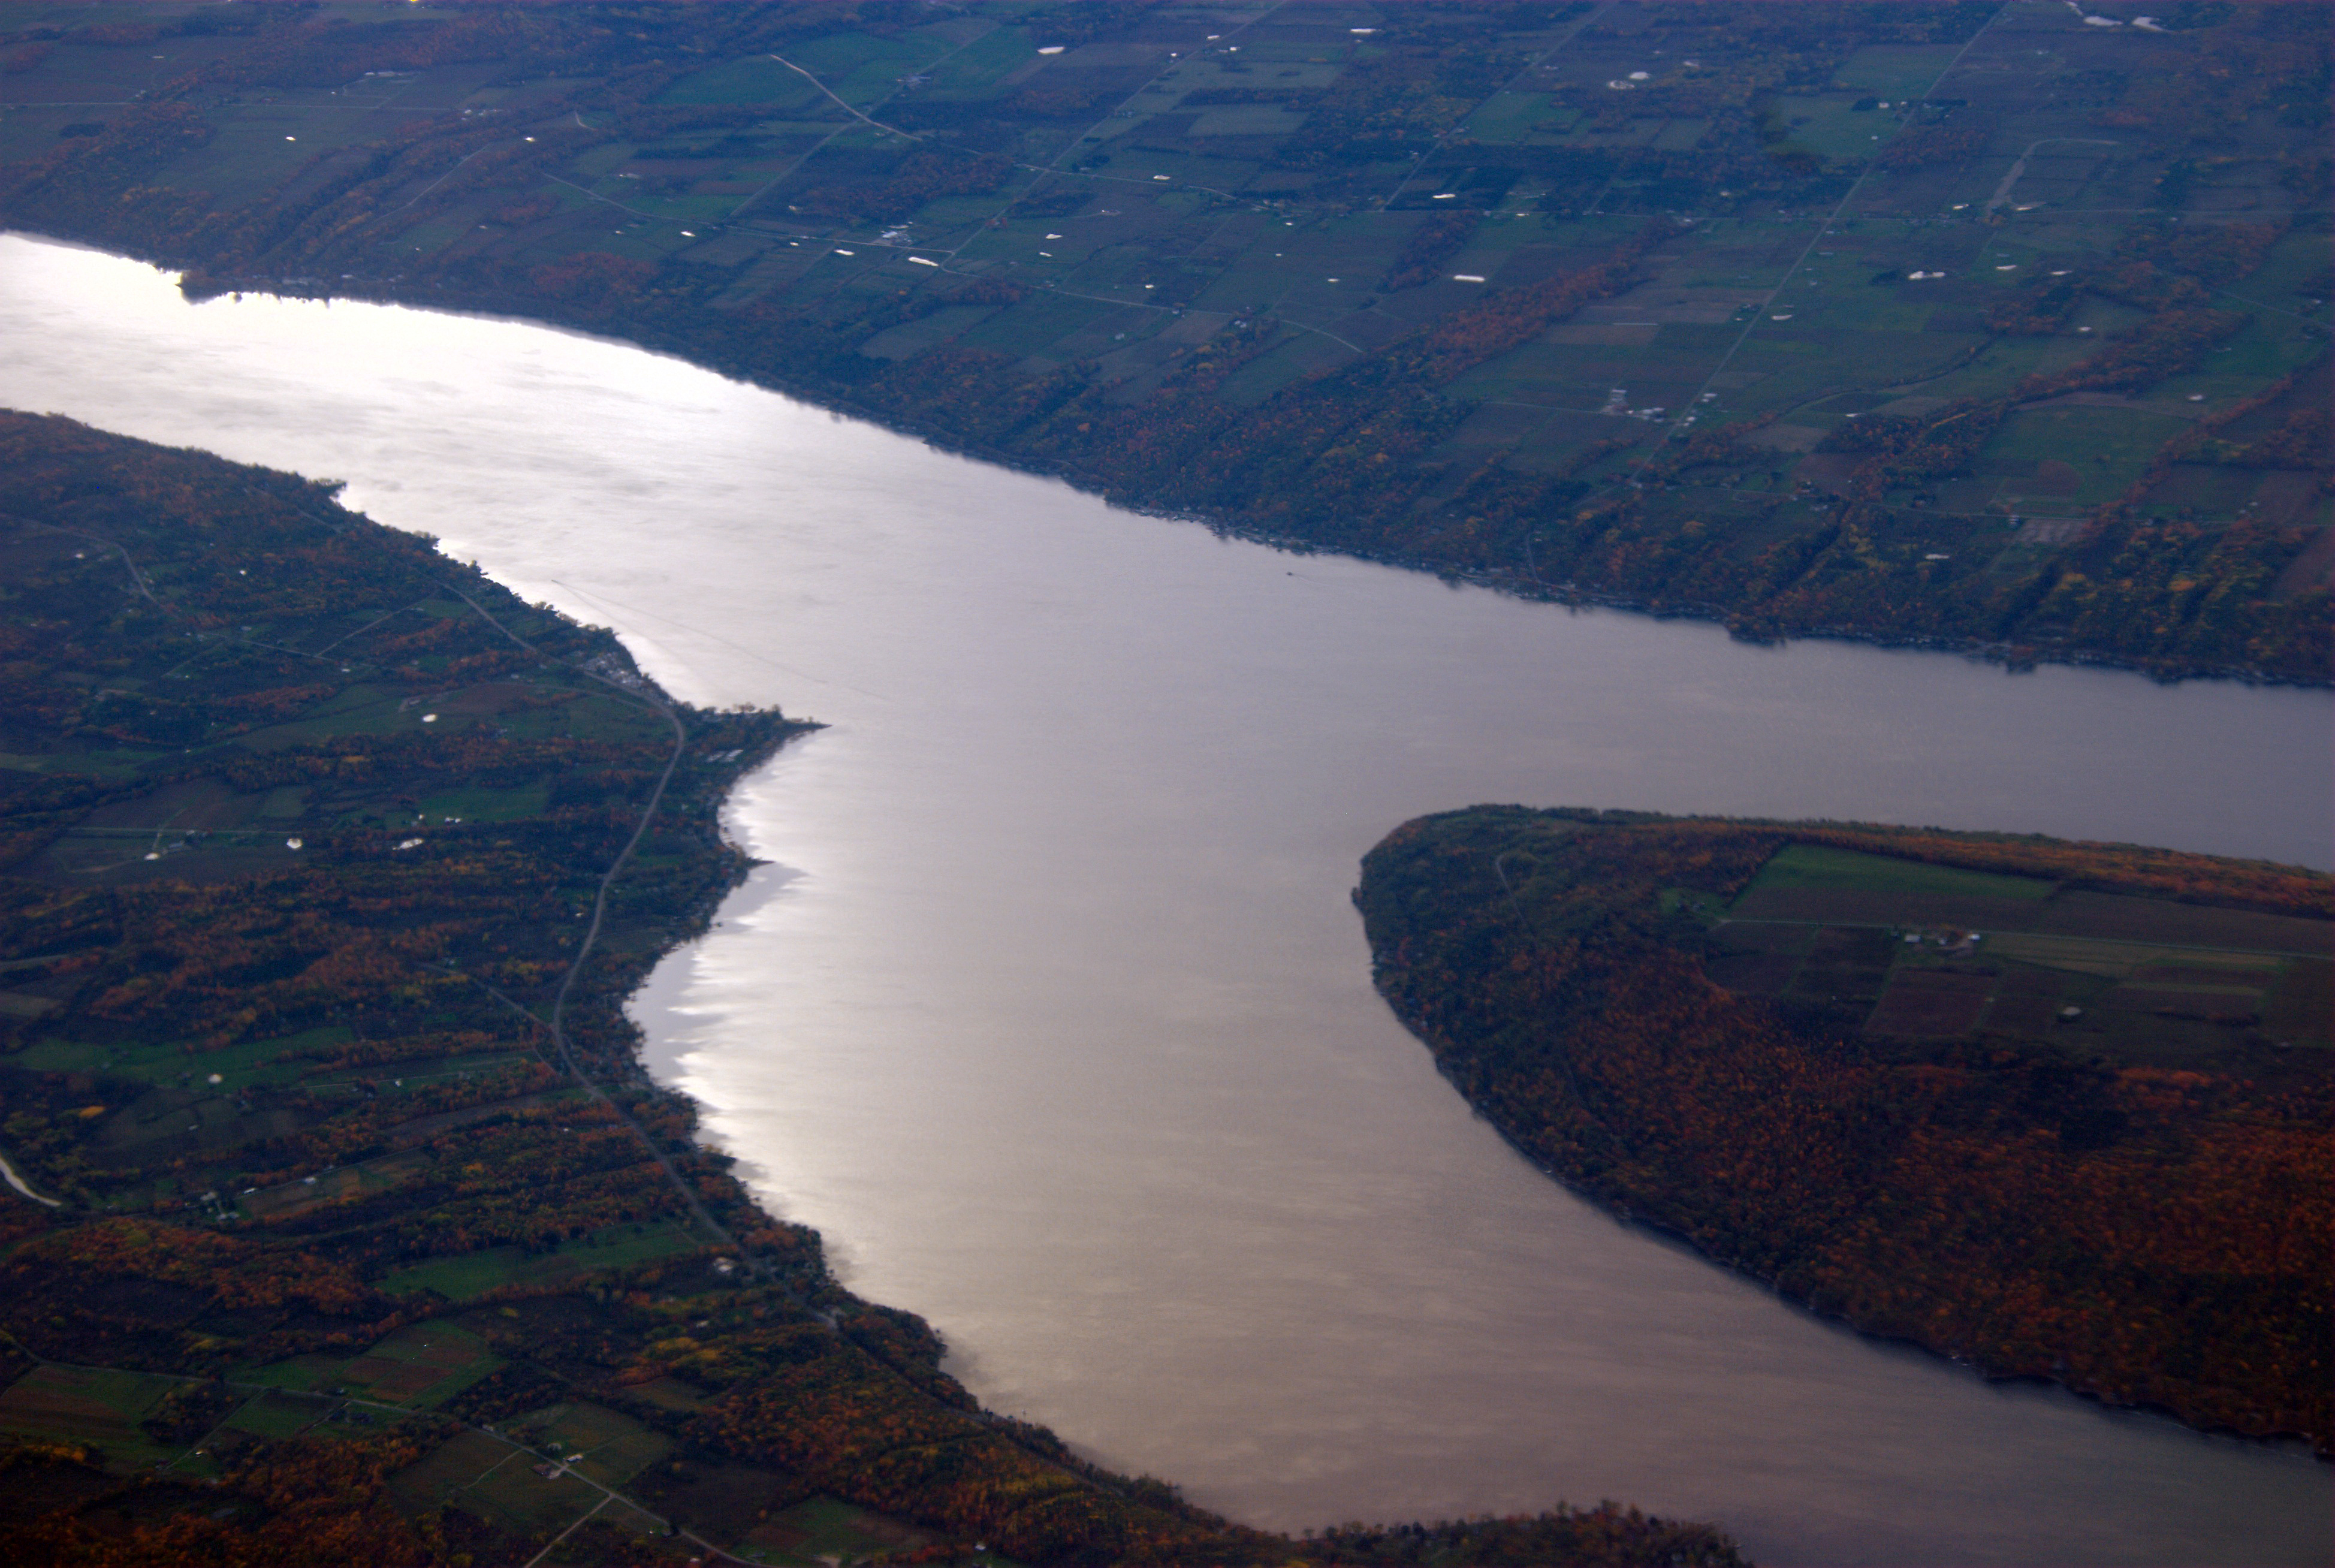 Unlike the other Finger Lakes, which are long and narrow, Keuka Lake is shaped like a Y. Photo by Carl Mueller via Flickr.